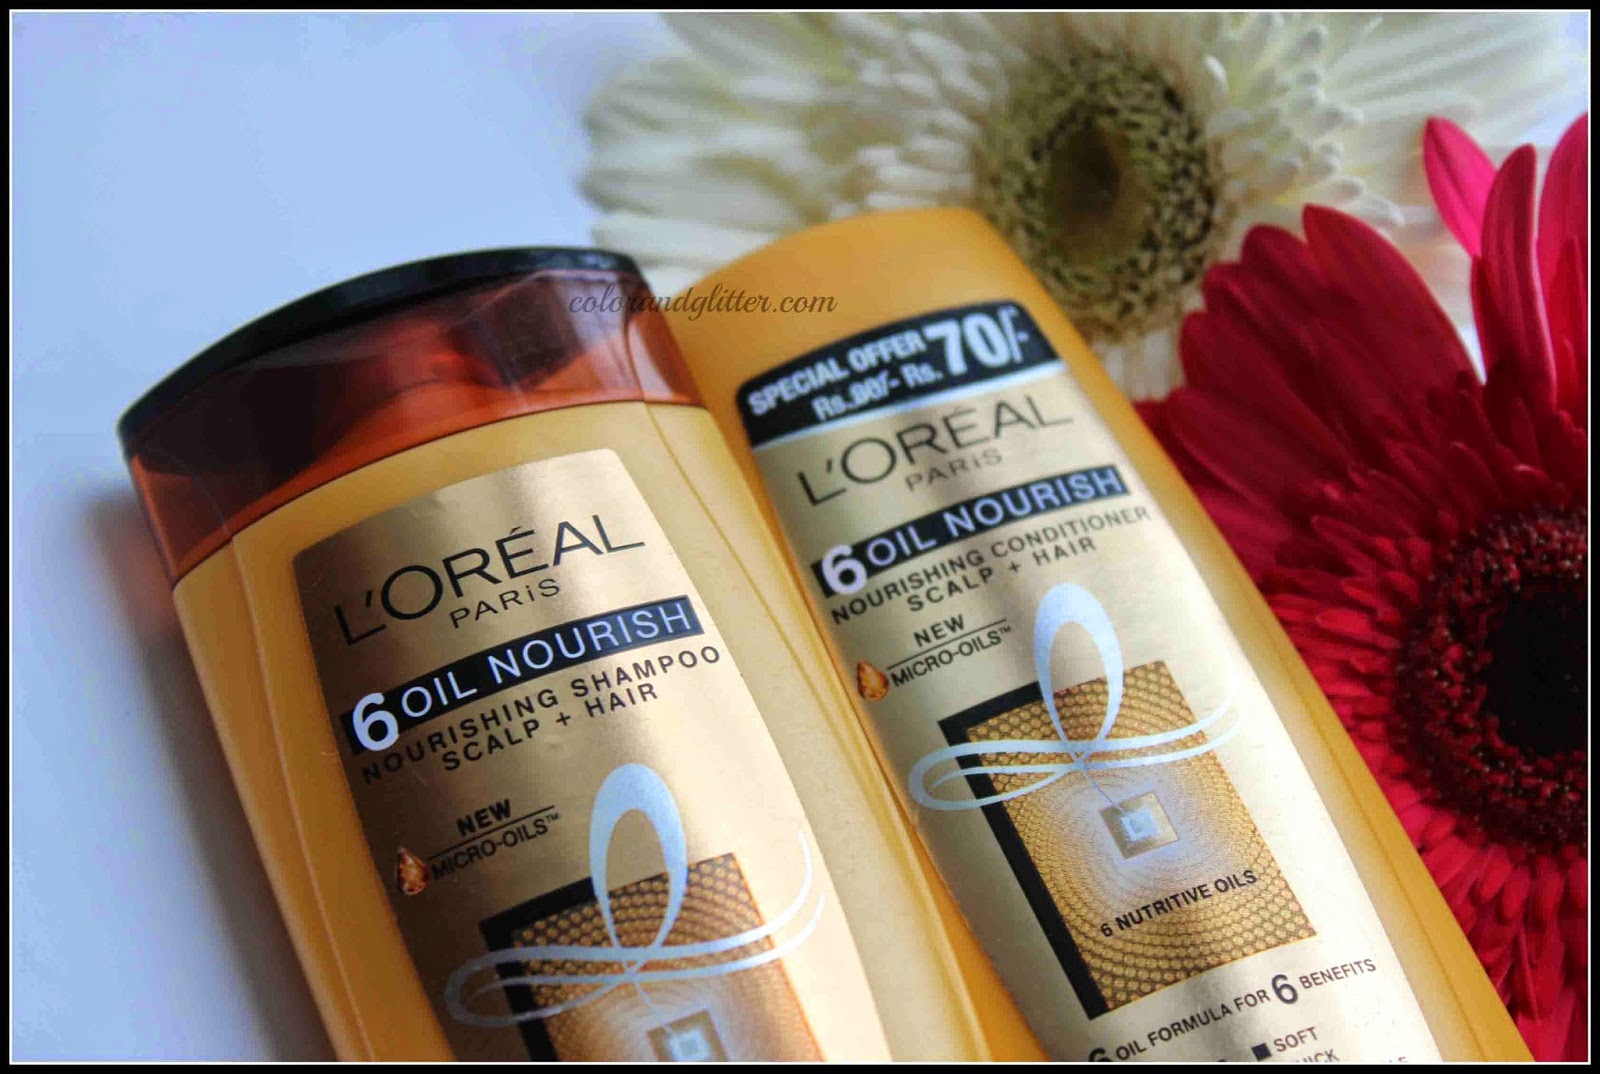 L'Oreal Paris 6 Oil Nourish Shampoo and Conditioner || Review